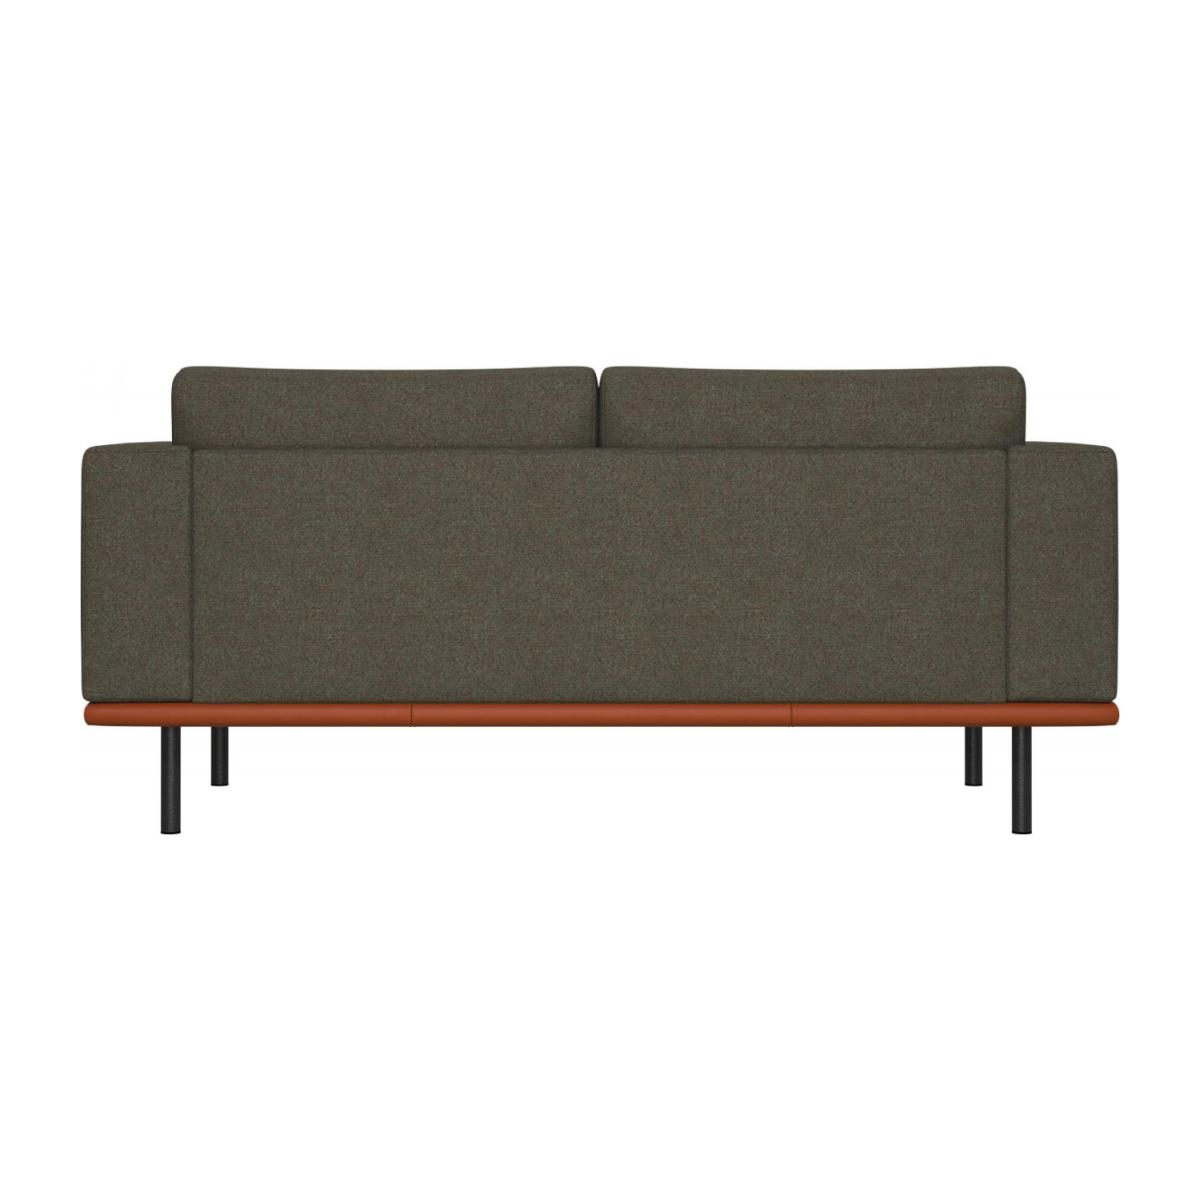 2 seater sofa in Lecce fabric, slade grey with base in brown leather n°3